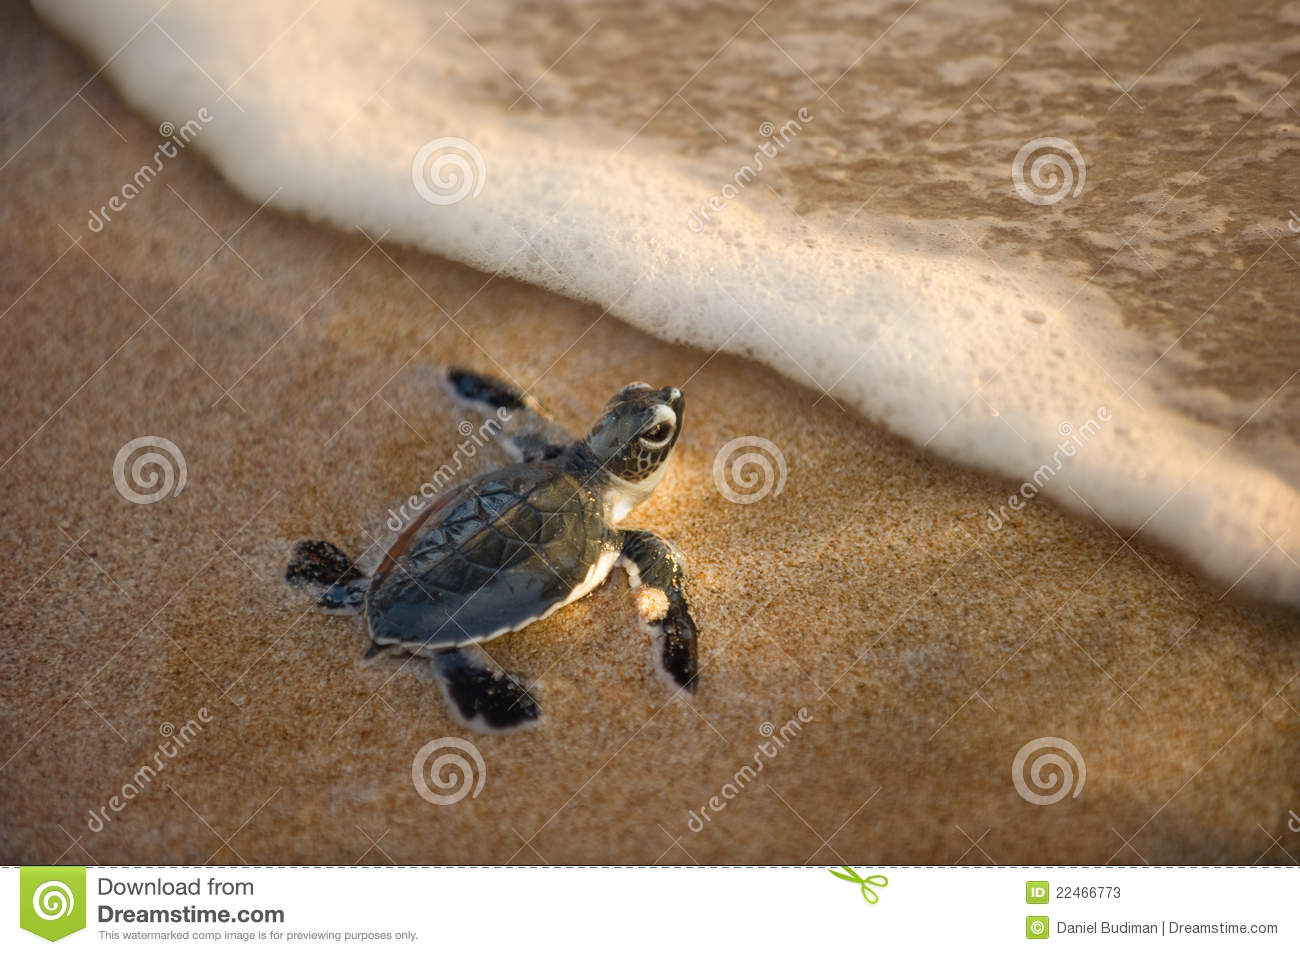 Newly hatched baby turtle toward the ocean stock image image of download newly hatched baby turtle toward the ocean stock image image of wave marine publicscrutiny Image collections